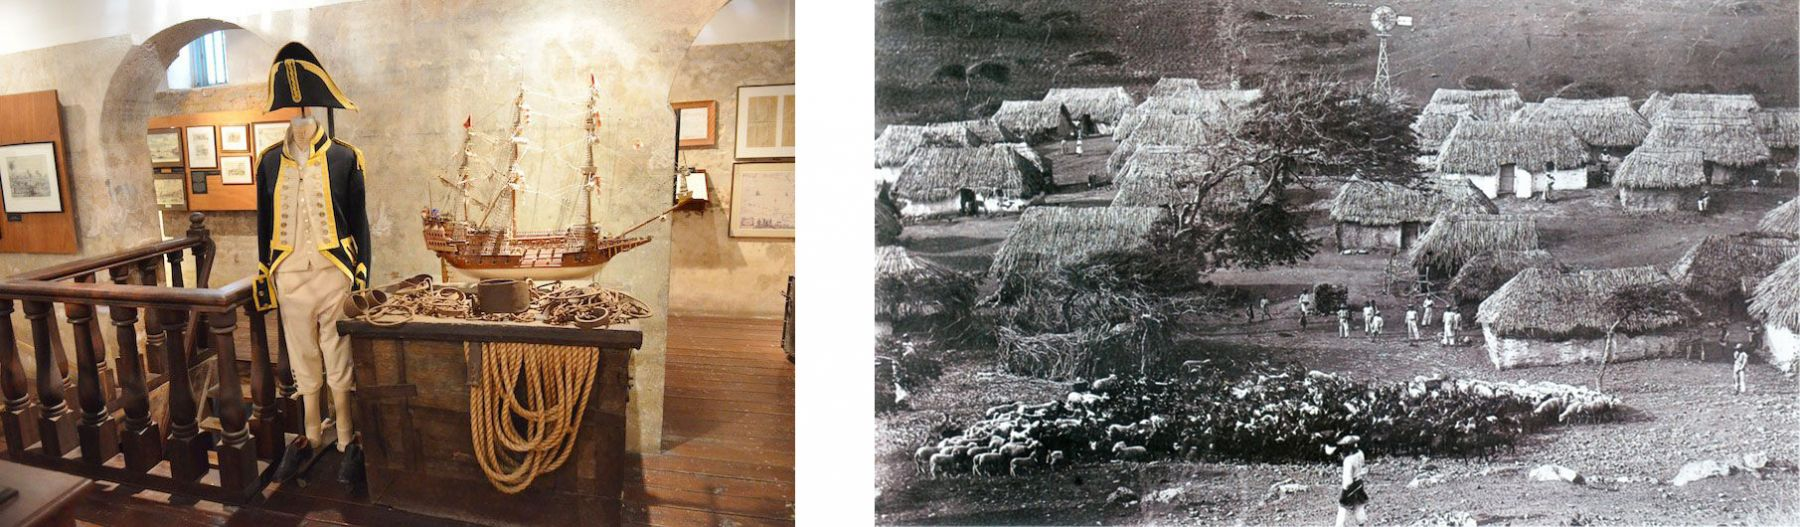 Left: photo by De Beijer, taken during his residency when he visited the Museum Kurá Hulanda, Curaçao.  Right: from the artist's research archive — a former plantation of Siberio Cafiero, Curaçao (1900-1904).